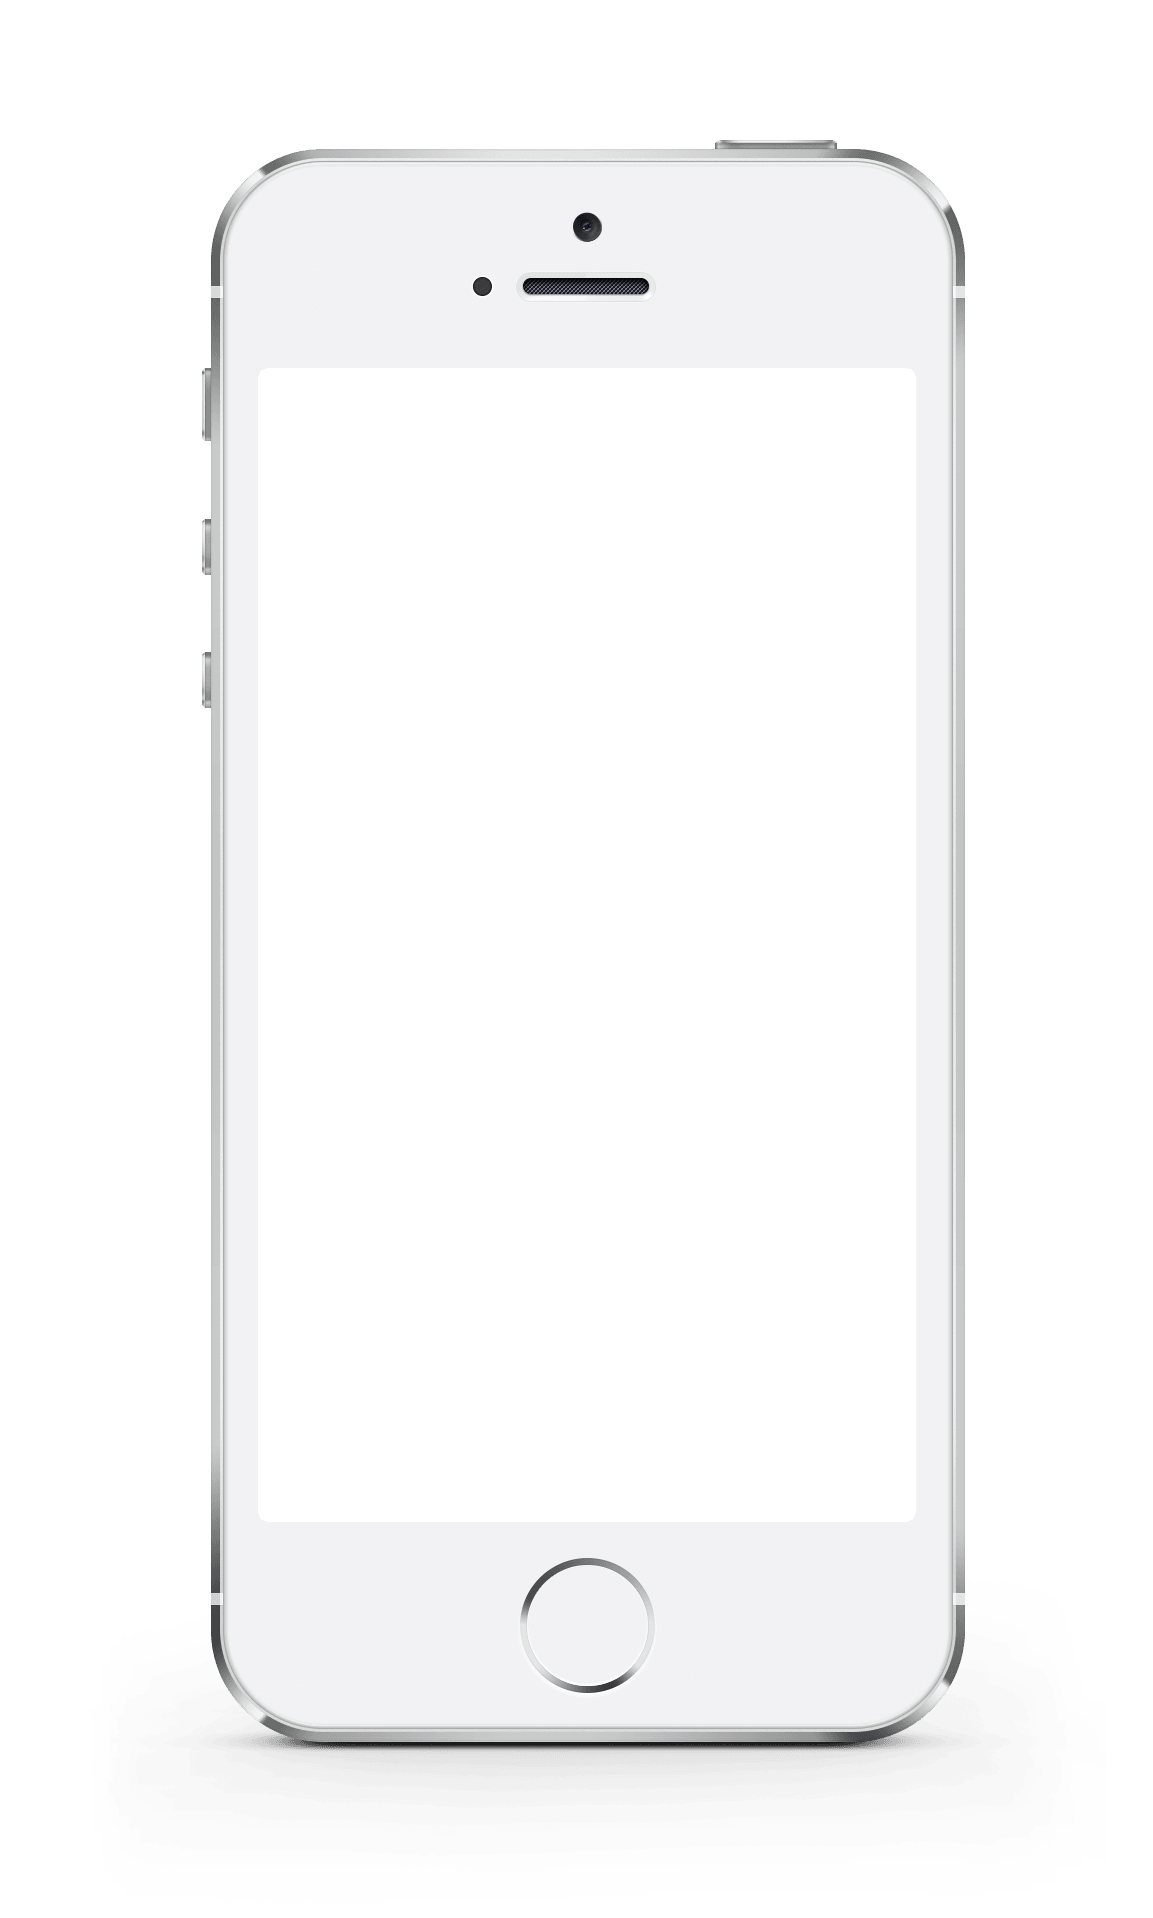 Iphone 7 outline png. Backcountry app available on